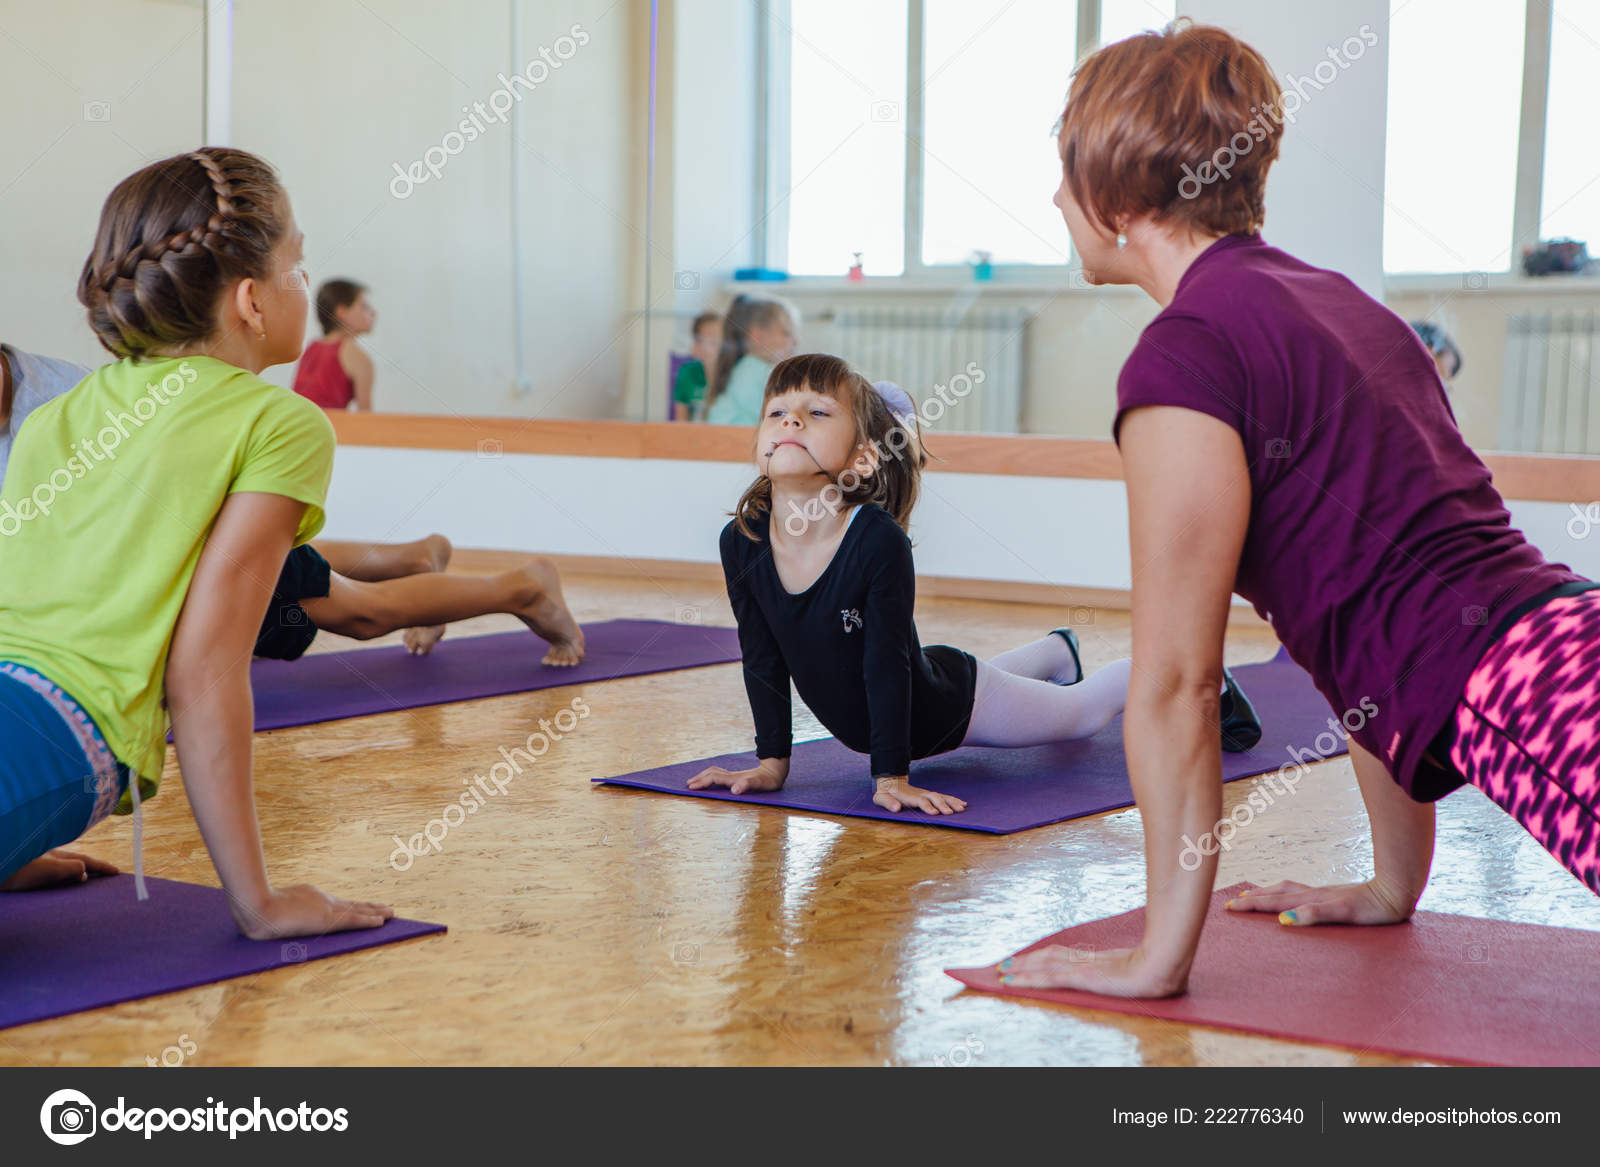 Yoga lesson for kids with teacher in a room – Stock